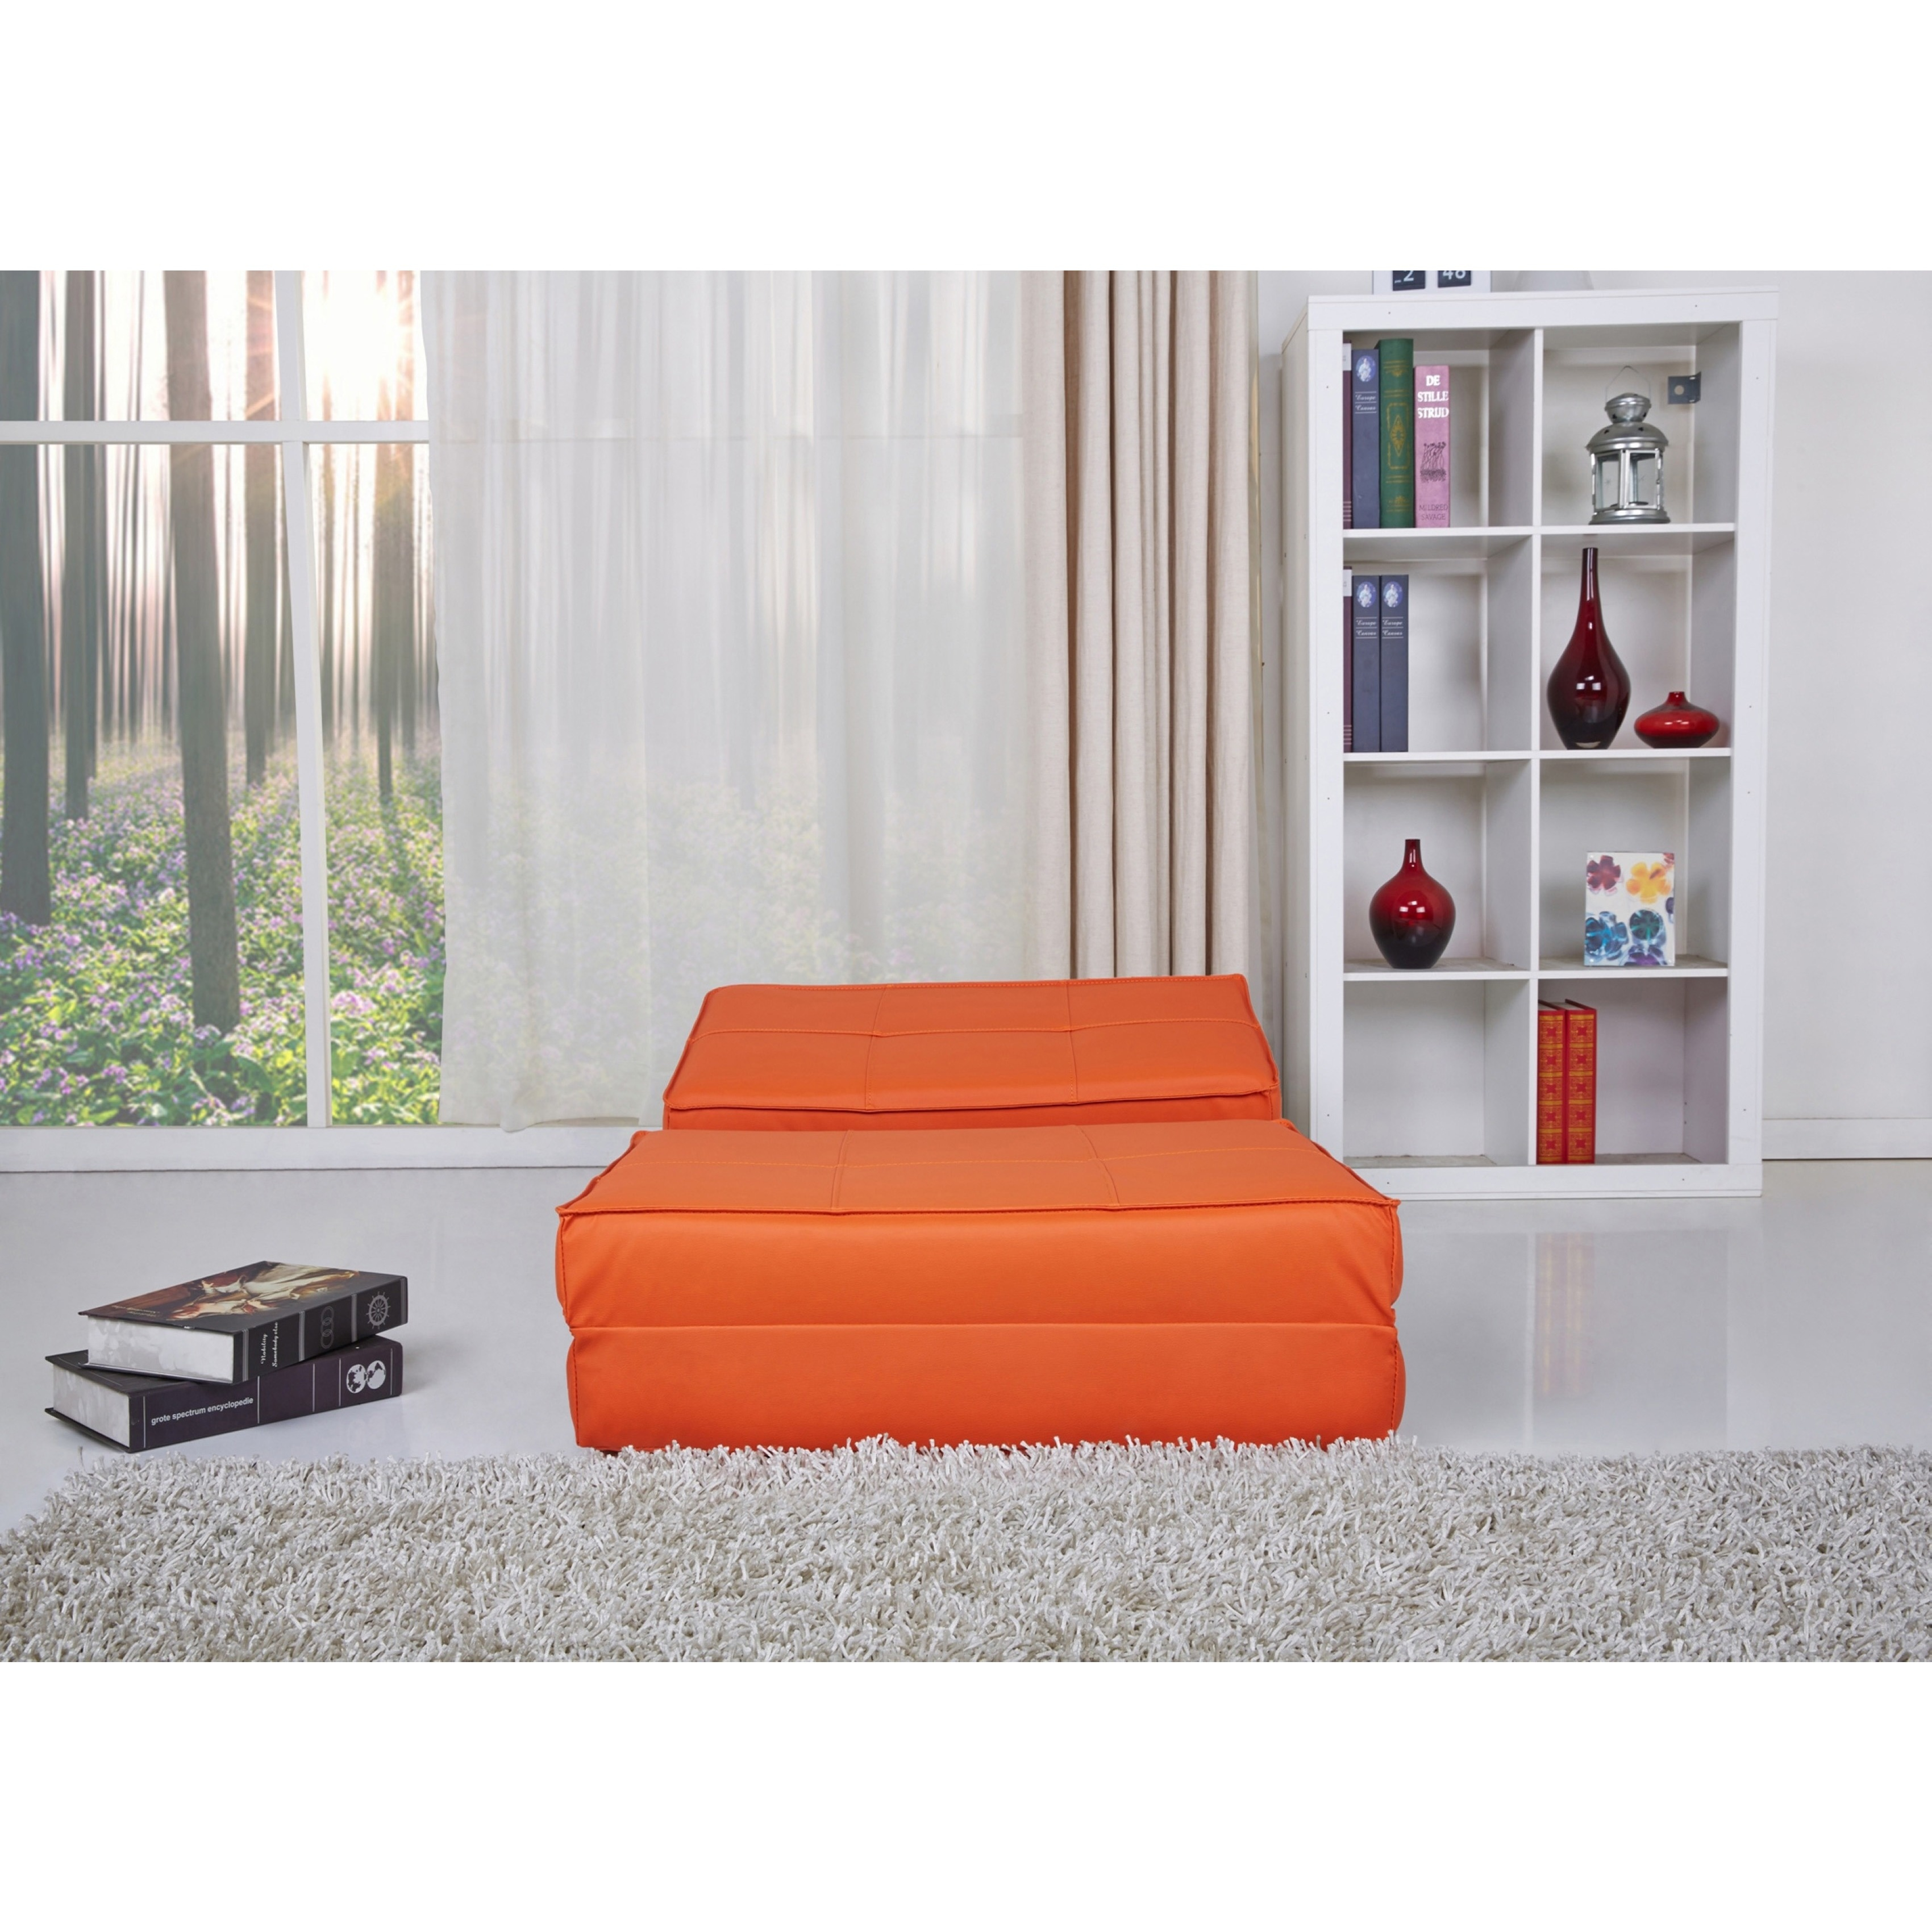 baltimore orange convertible chair bed   free shipping today   overstock     14037431 baltimore orange convertible chair bed   free shipping today      rh   overstock